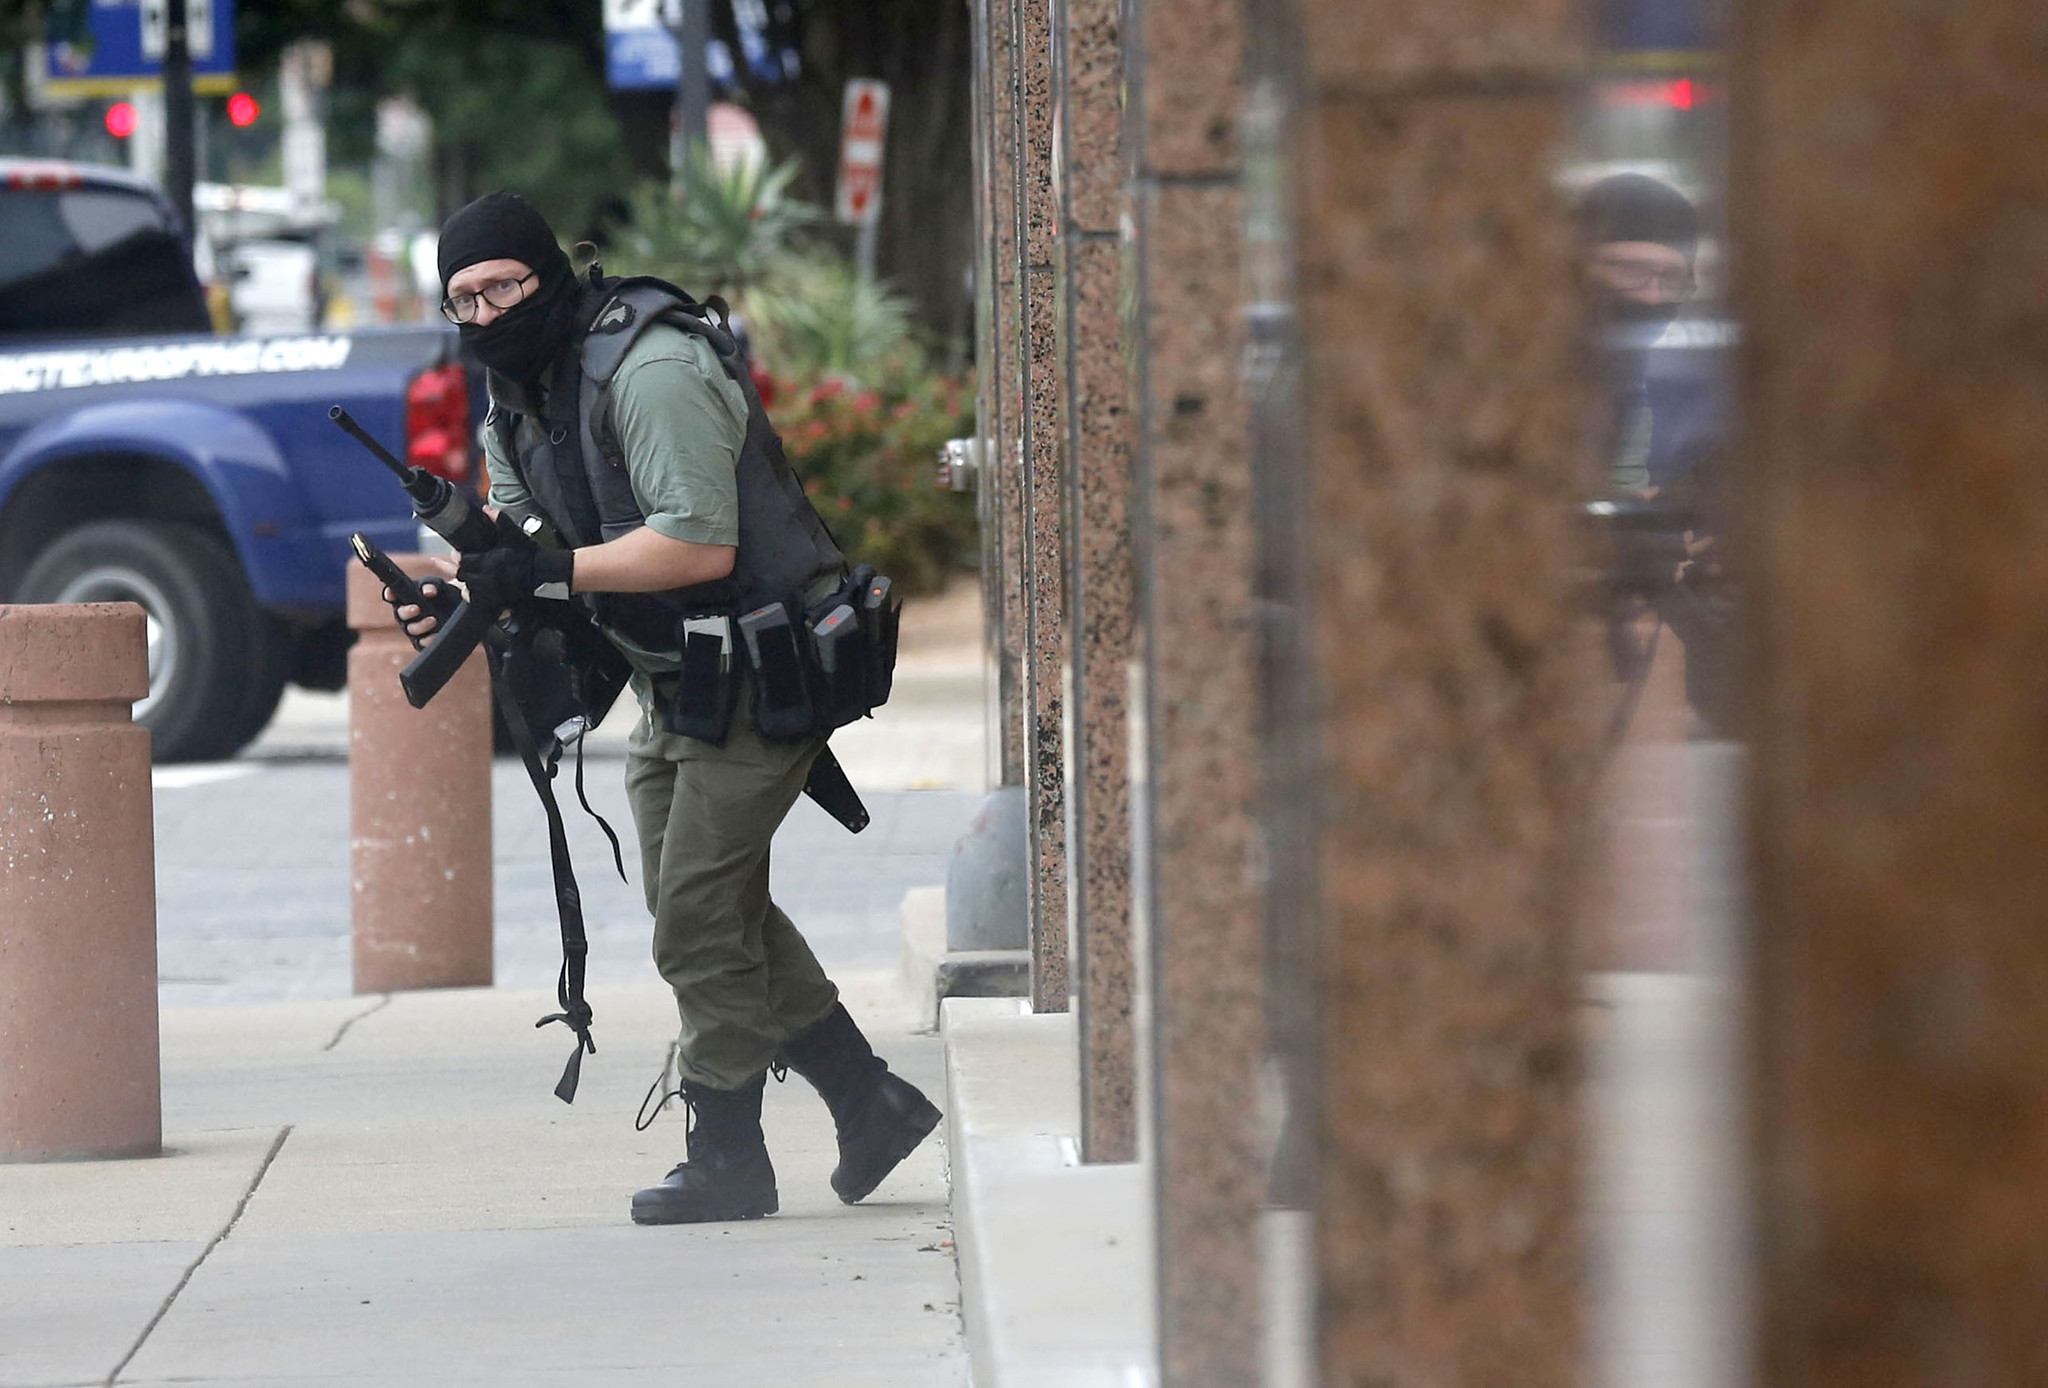 Masked gunman carrying high-powered rifle killed in exchange of gunfire with officers outside Dallas courthouse